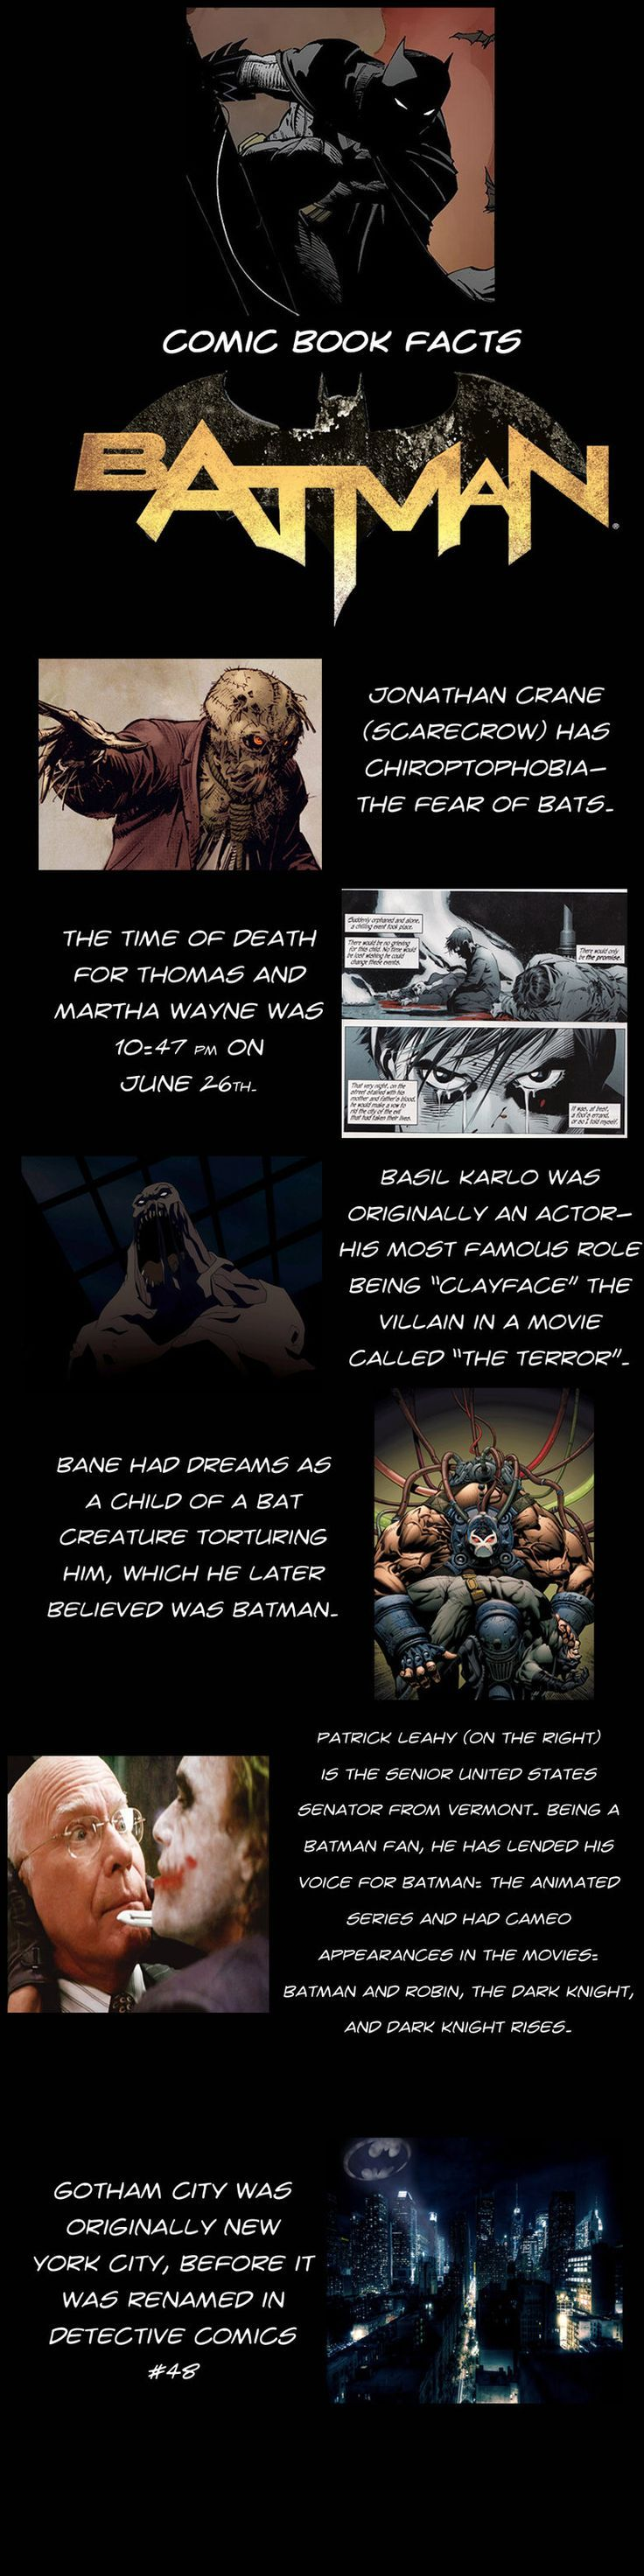 Batman Facts